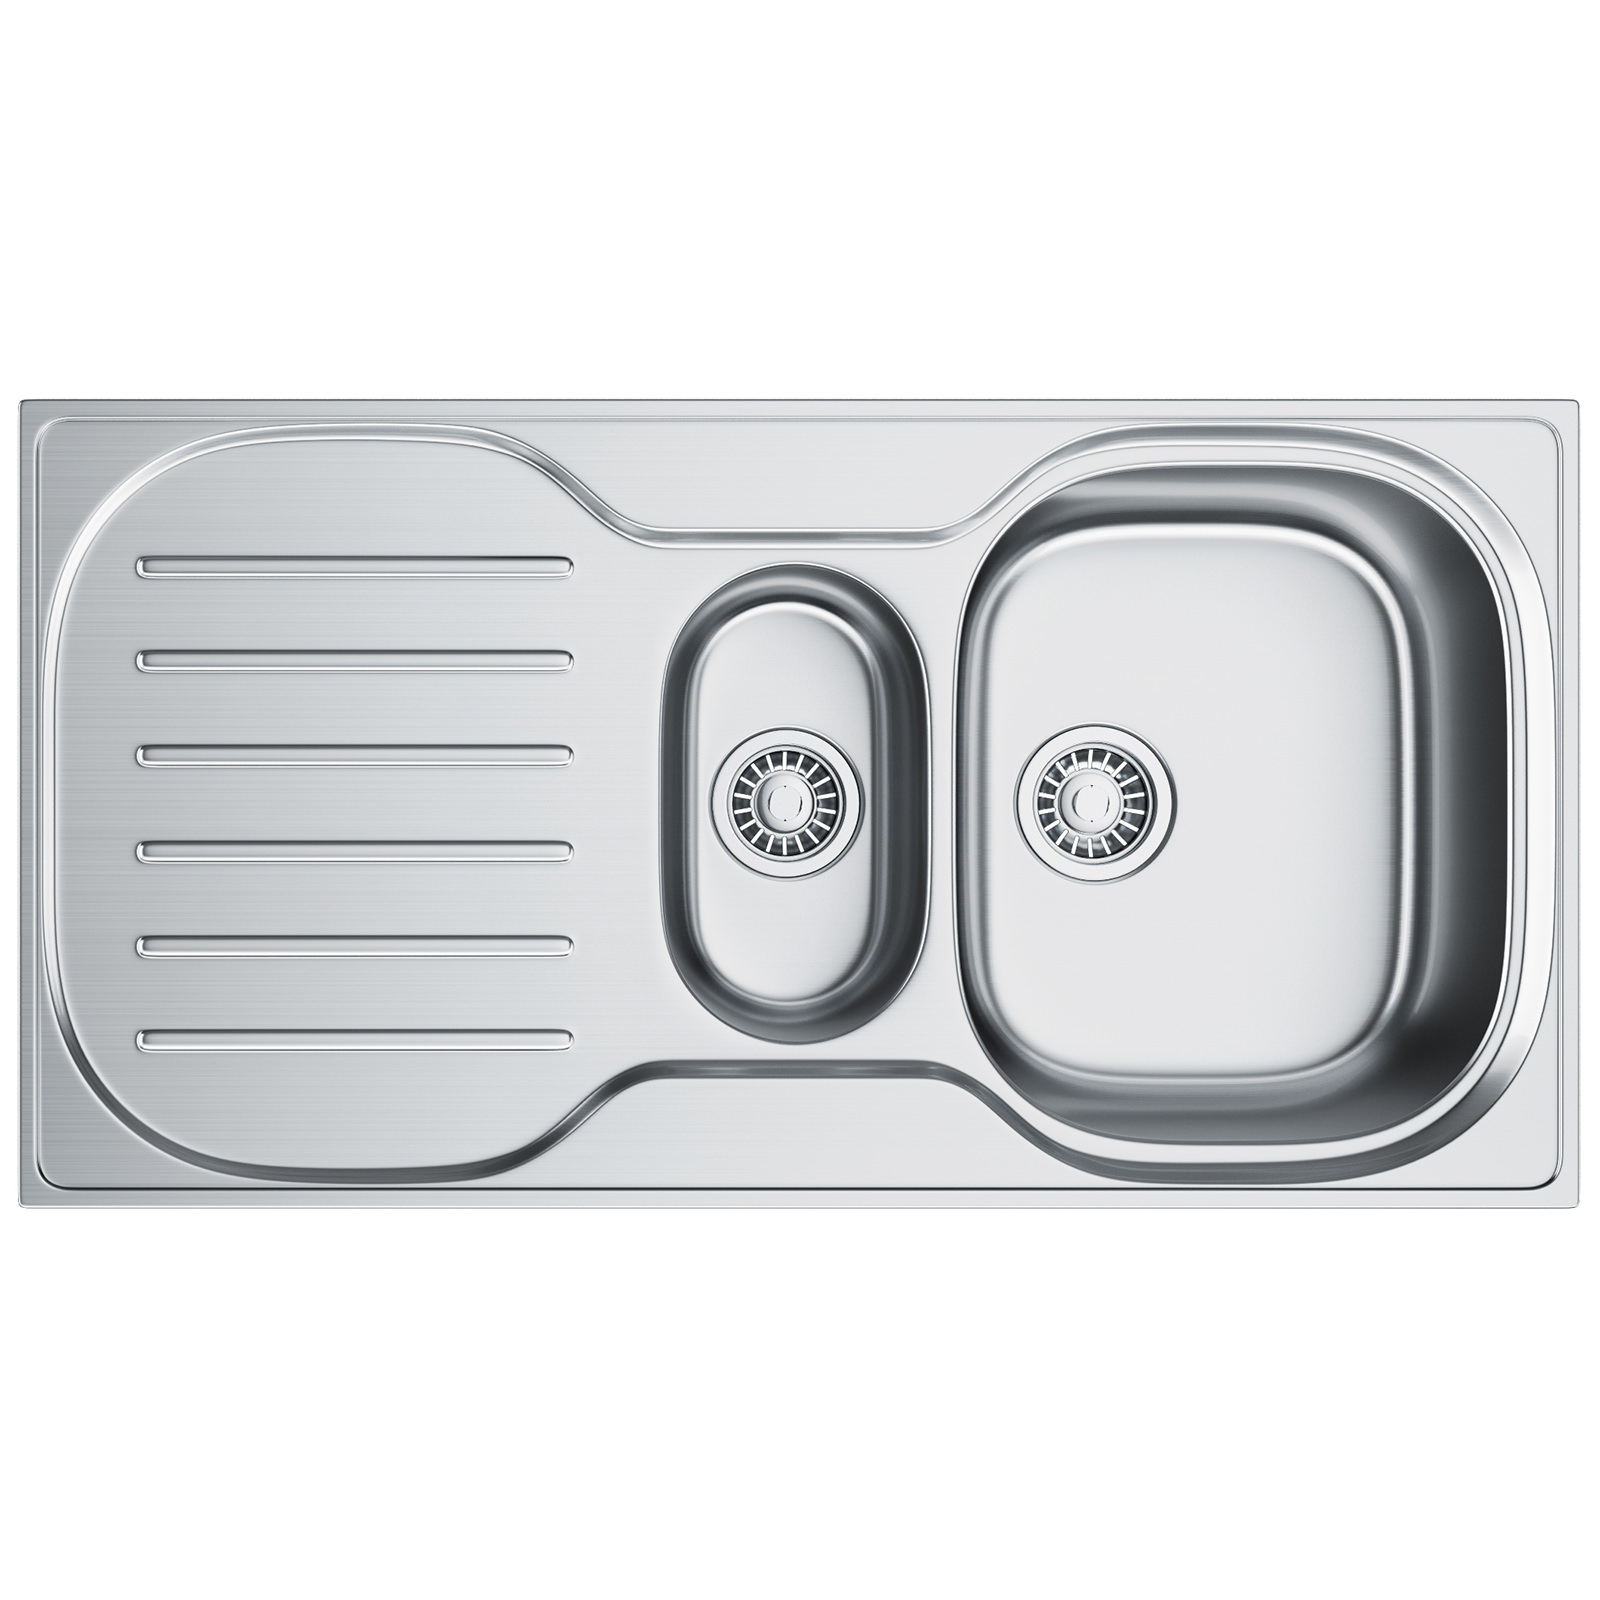 1.5 Bowl Kitchen Sink Franke compact plus crx p 651 15 bowl stainless steel inset sink workwithnaturefo